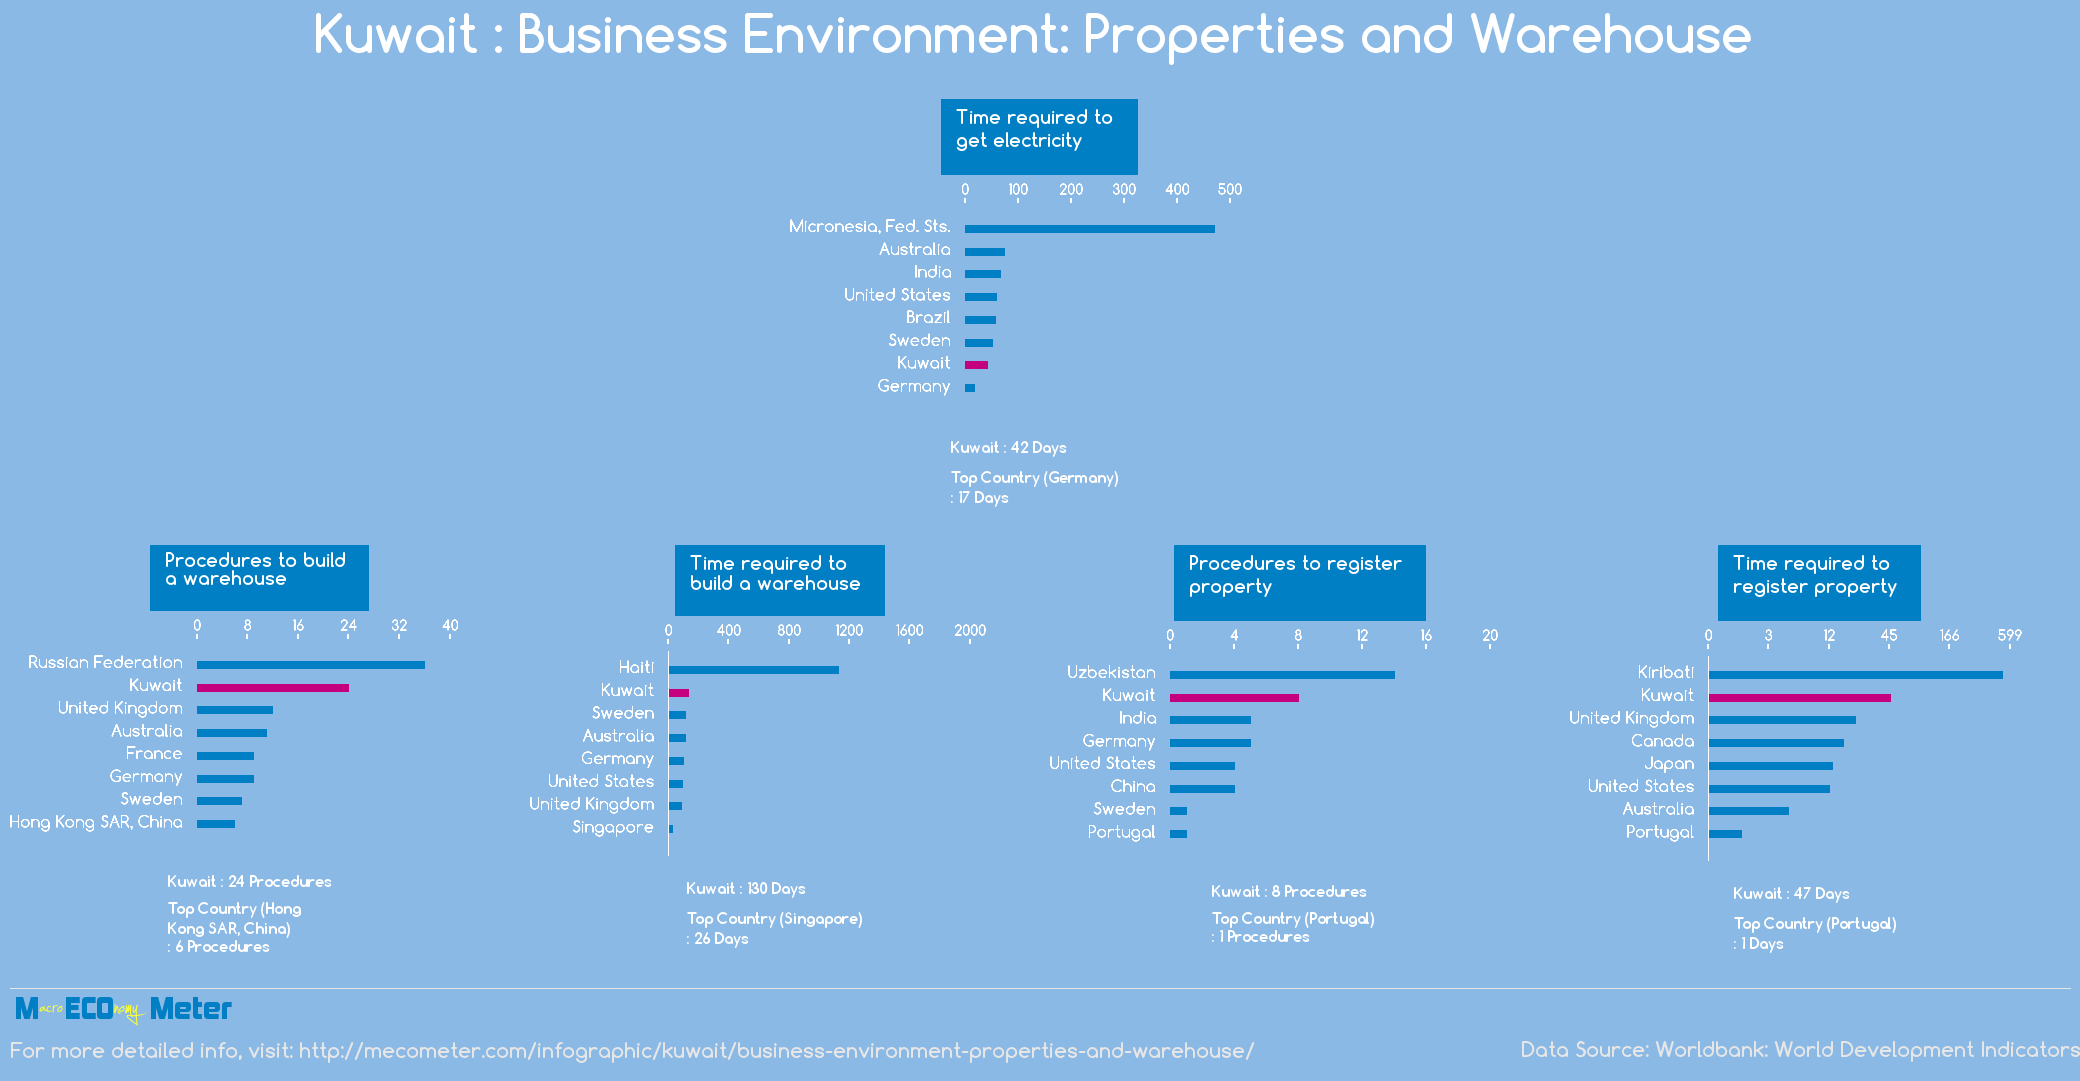 Kuwait : Business Environment: Properties and Warehouse